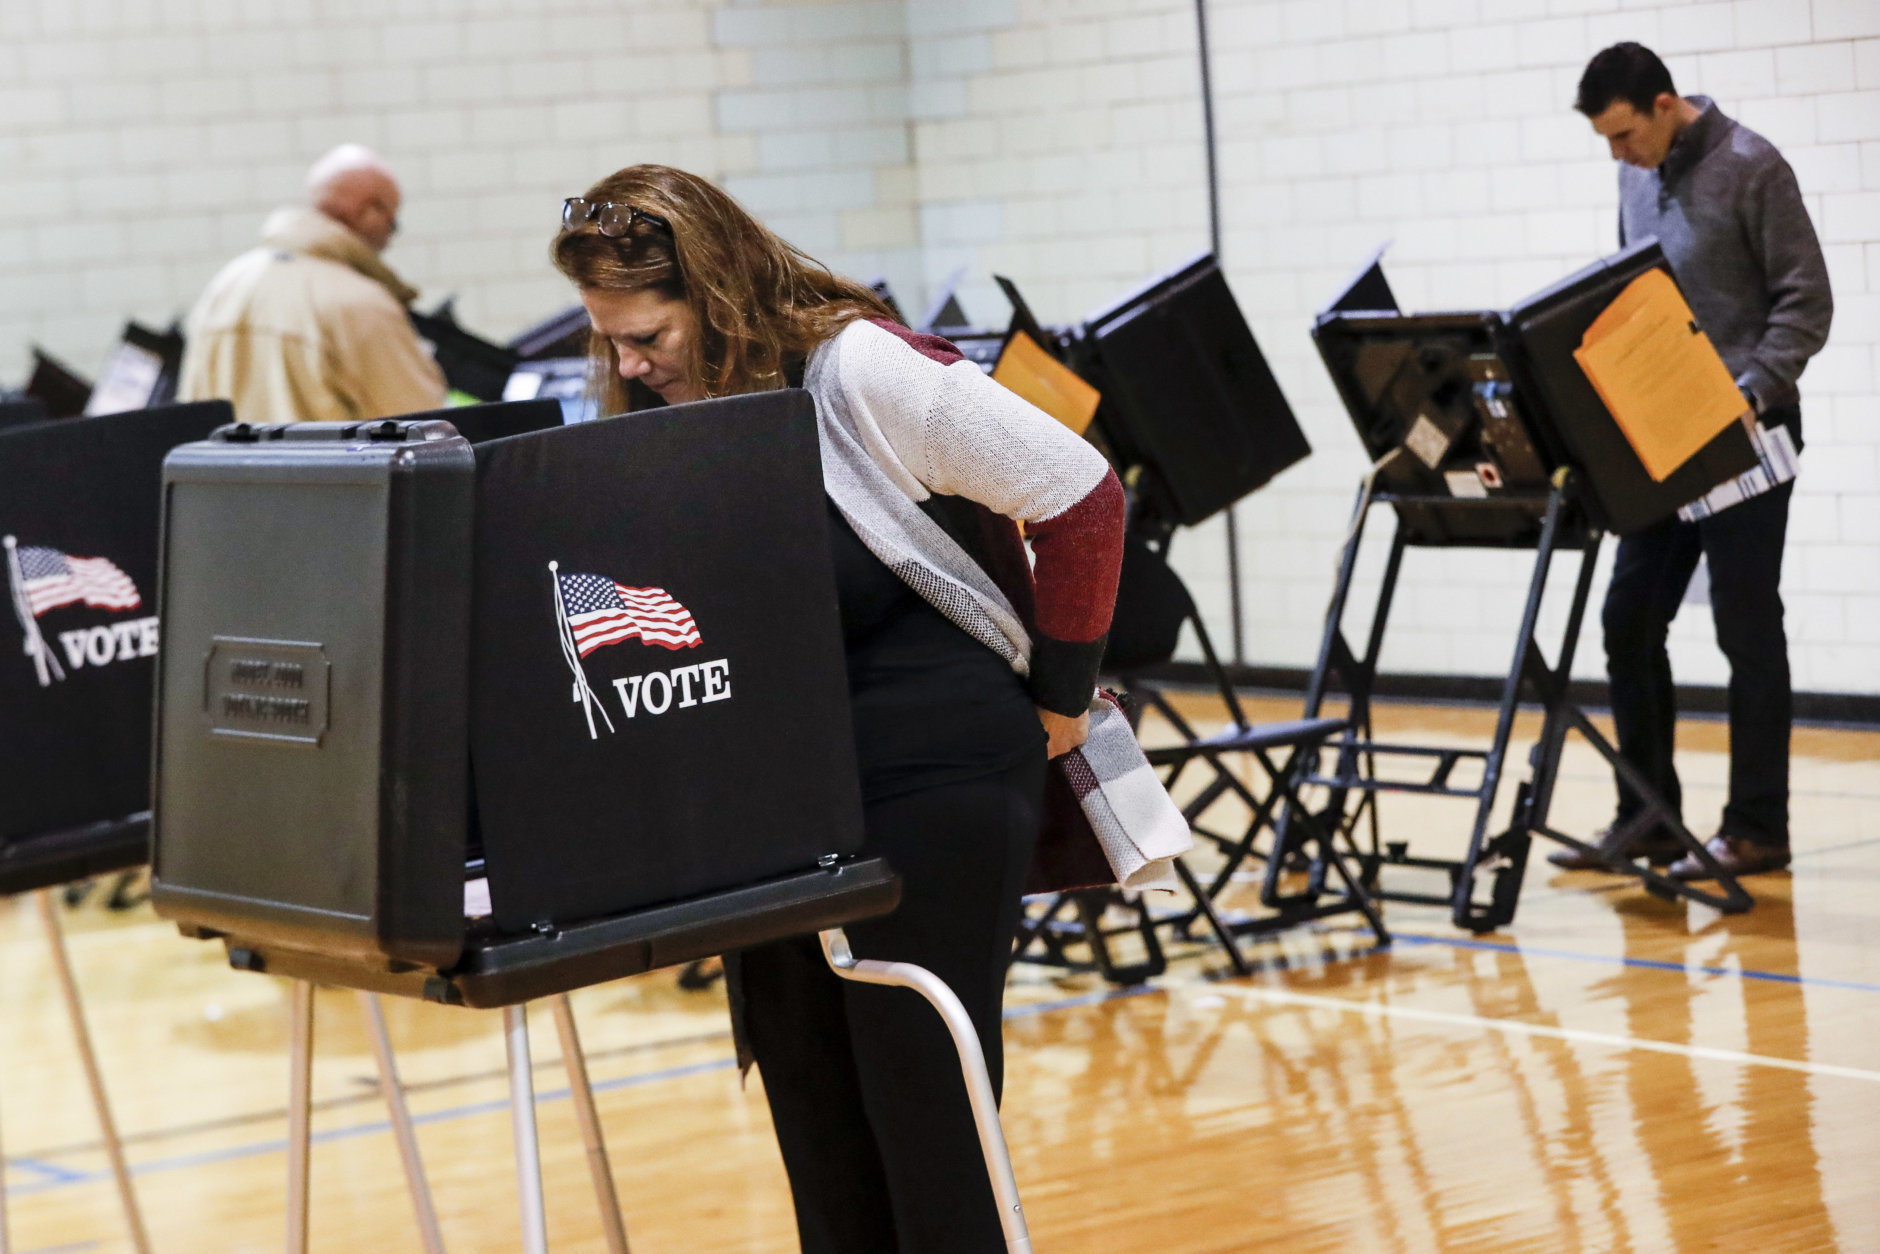 Voters fill out their ballots at the Whetstone Community Center polling location, Tuesday, Nov. 6, 2018, in Columbus, Ohio. Across the country, voters headed to the polls Tuesday in one of the most high-profile midterm elections in years. (AP Photo/John Minchillo)